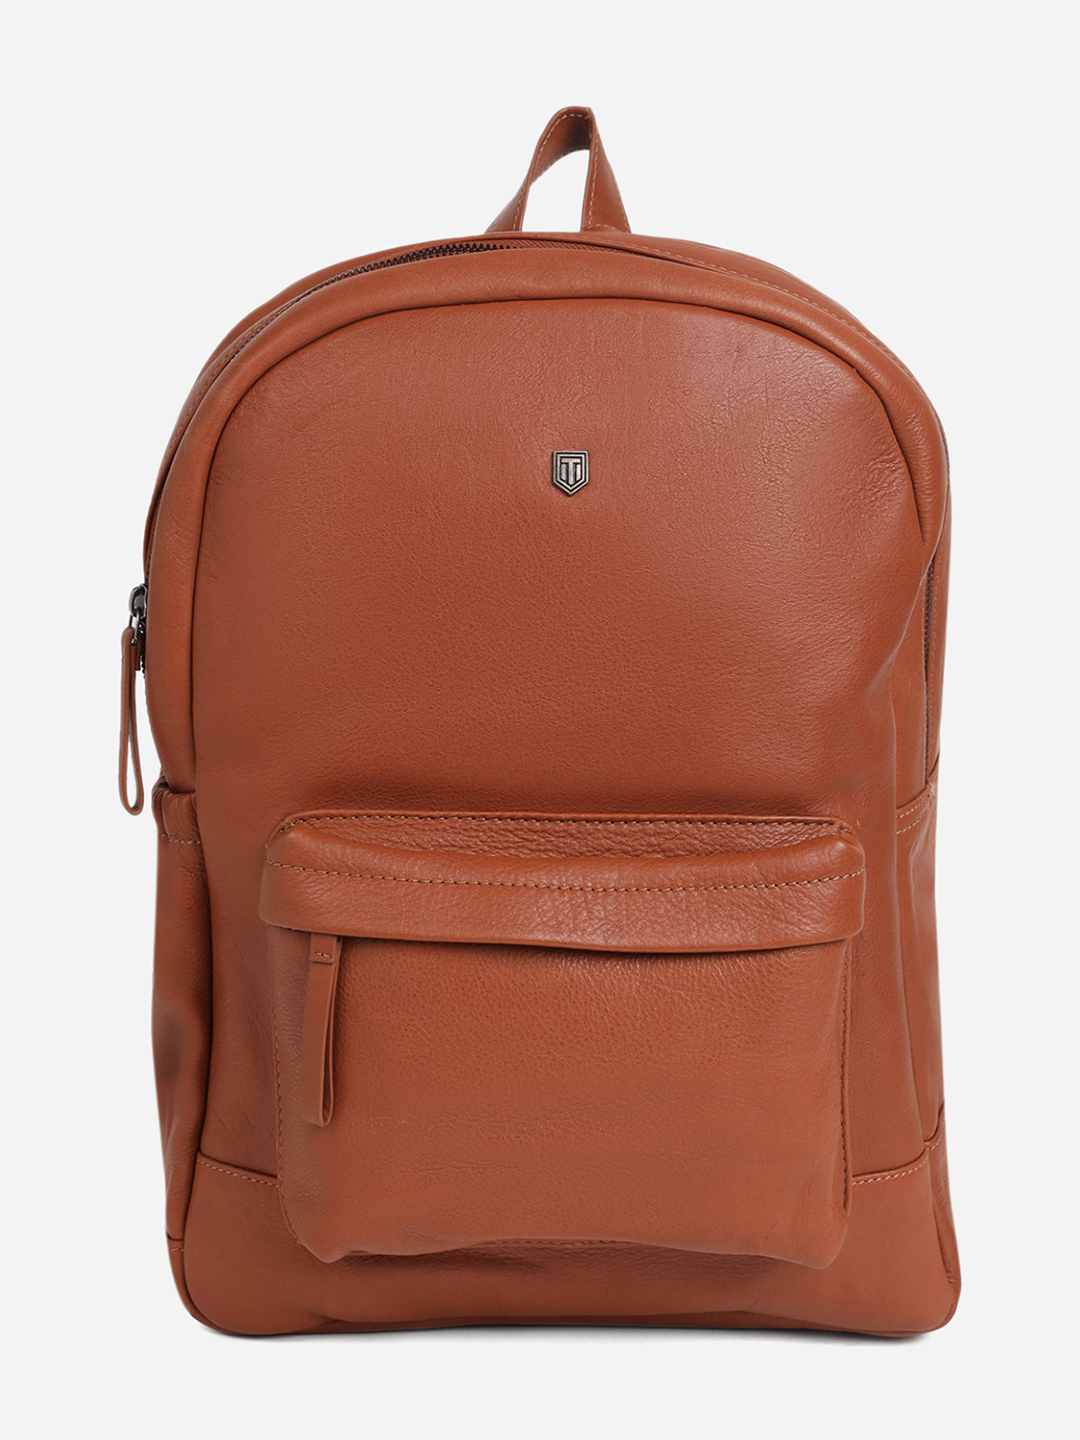 TOM LANG LONDON | TOM LANG LONDON LEATHER BACKPACK WITH FRONT AND SIDE POCKET